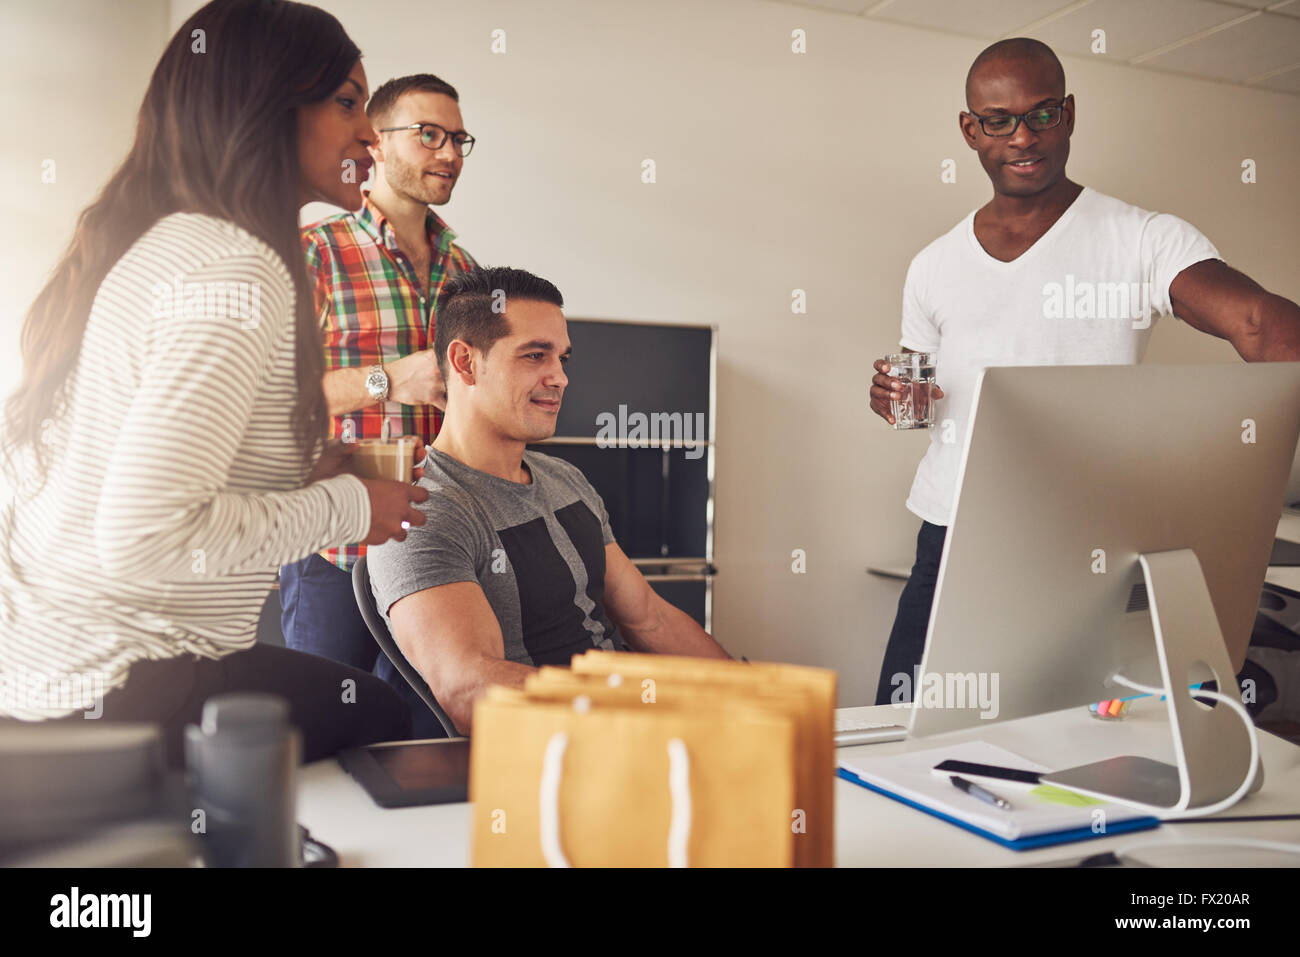 Diverse group of male and female adult entrepreneurs gathered together around large computer monitor on desk for - Stock Image